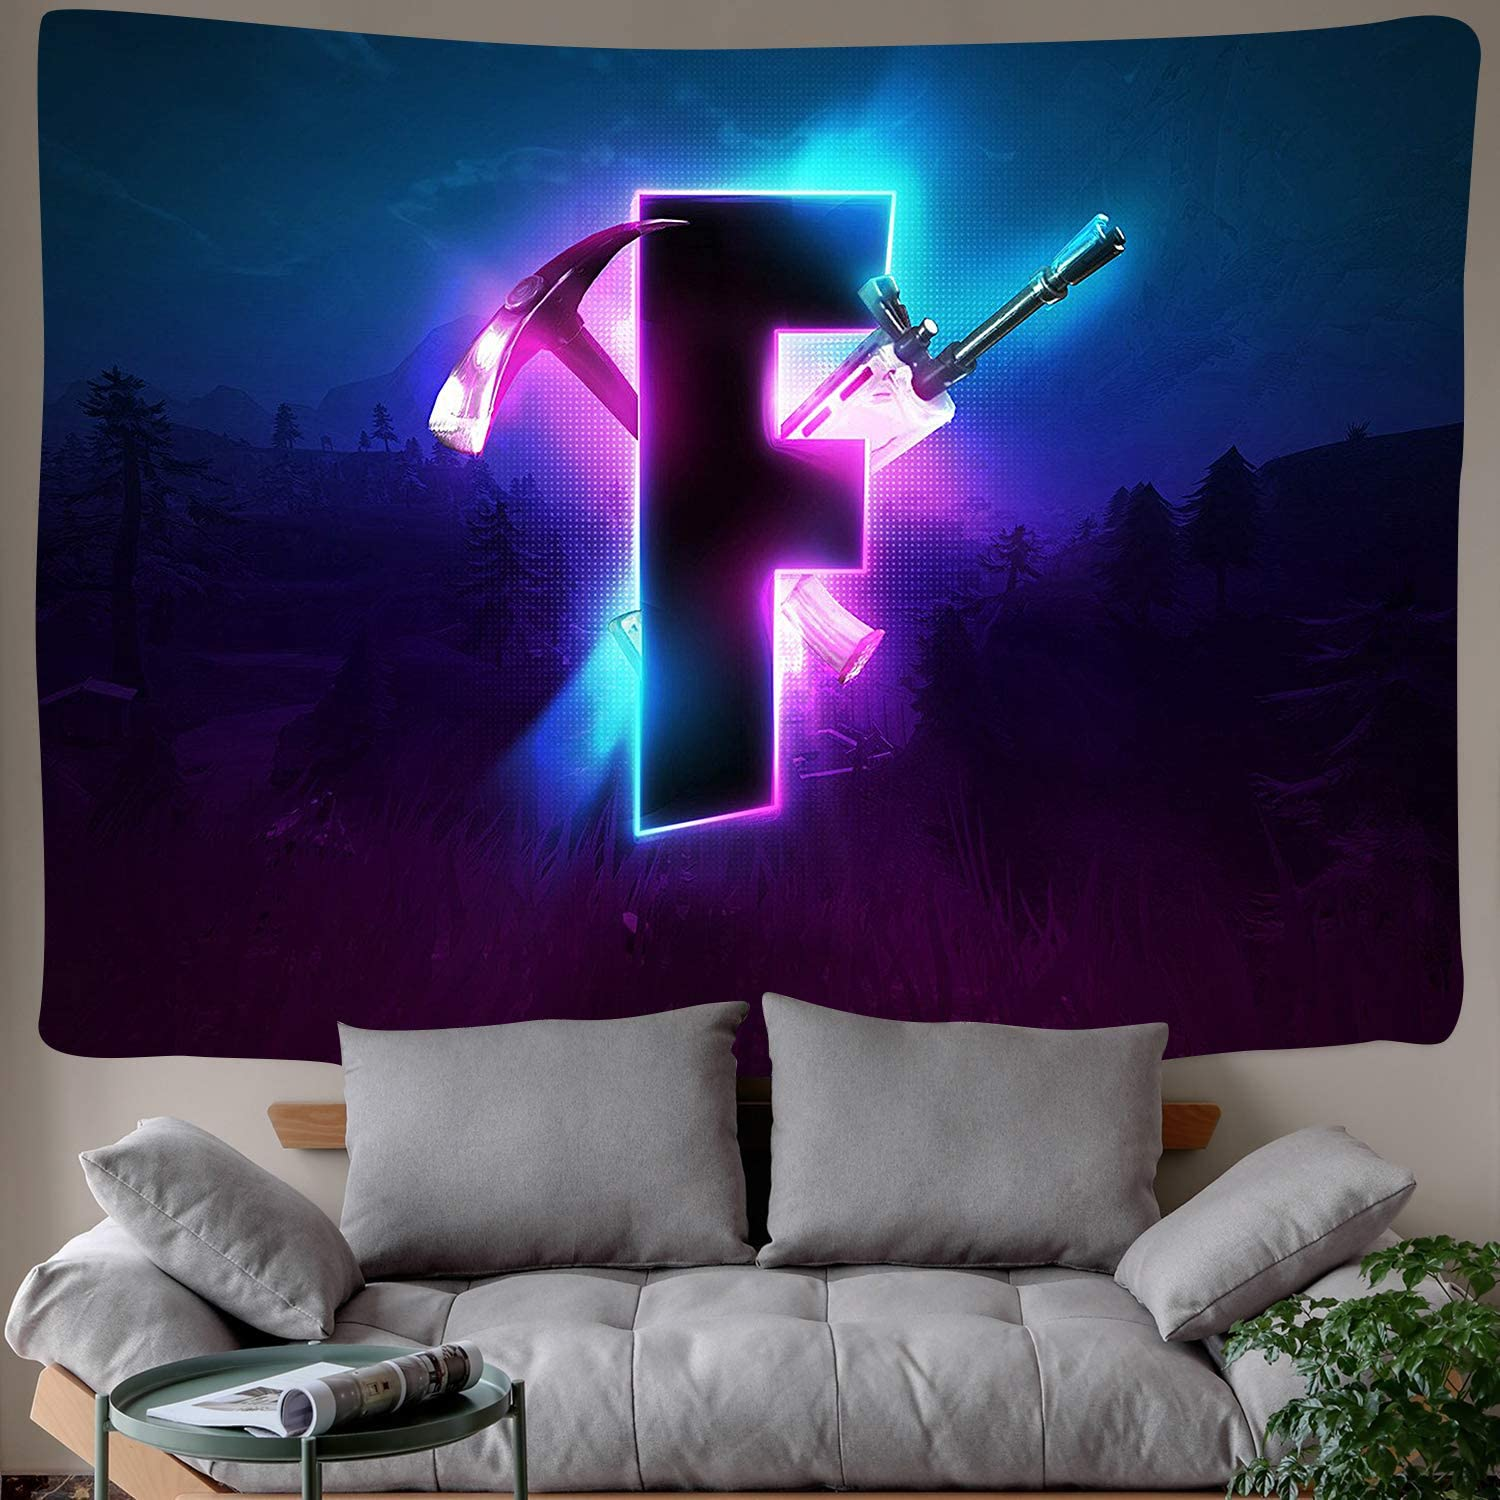 DBLLF Game Tapestry Competitive Game Logo Tapestry Video Battle Game Wall Hanging for Bedroom Living Room Dorm Handicrafts Curtain Home Decor 80×60 Inches DBZY0601